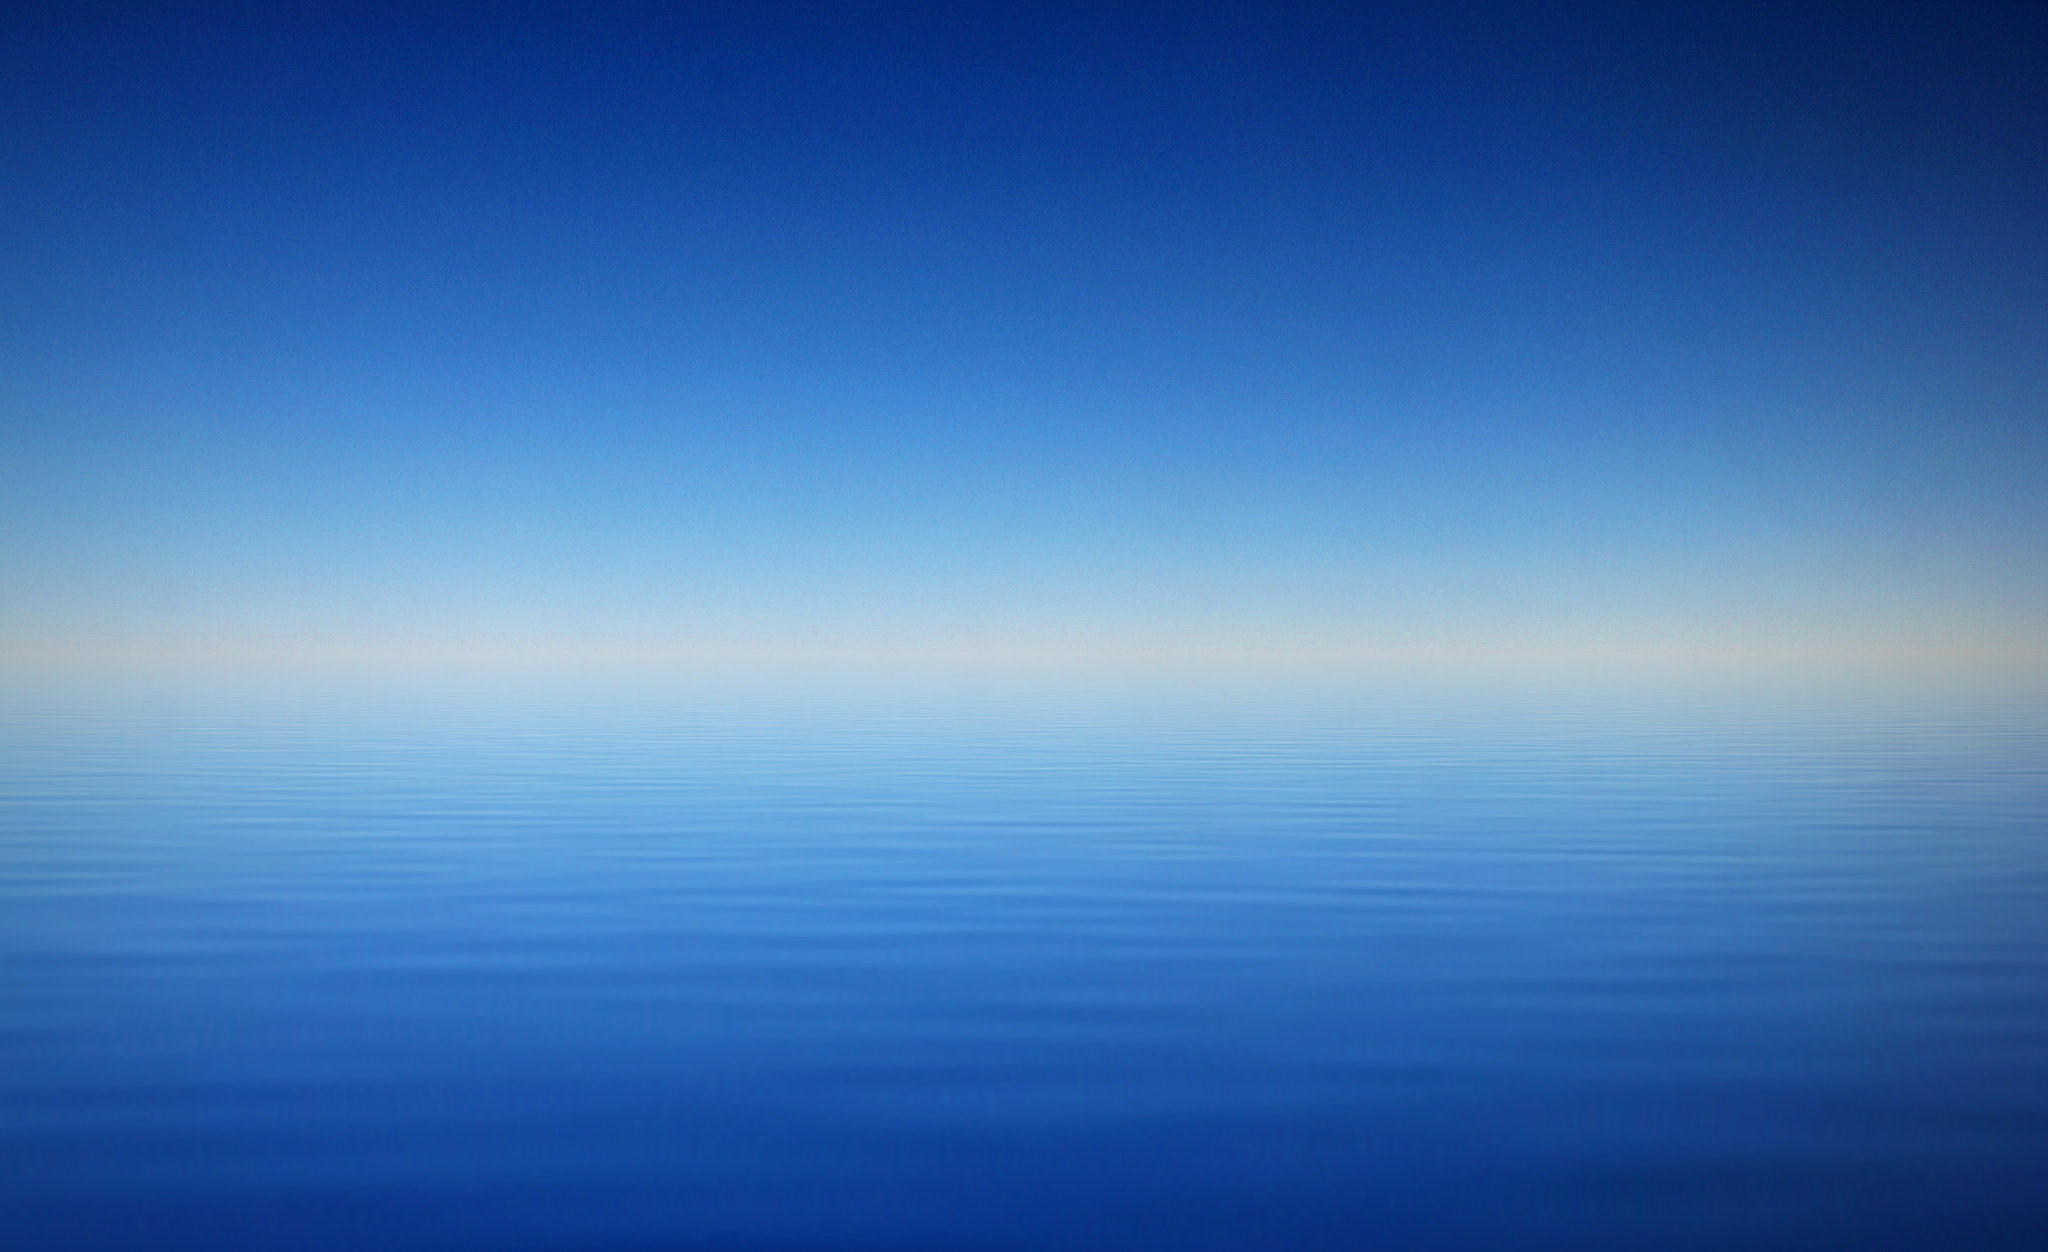 Photograph | Infinity | by Christopher  Hassler on 500px